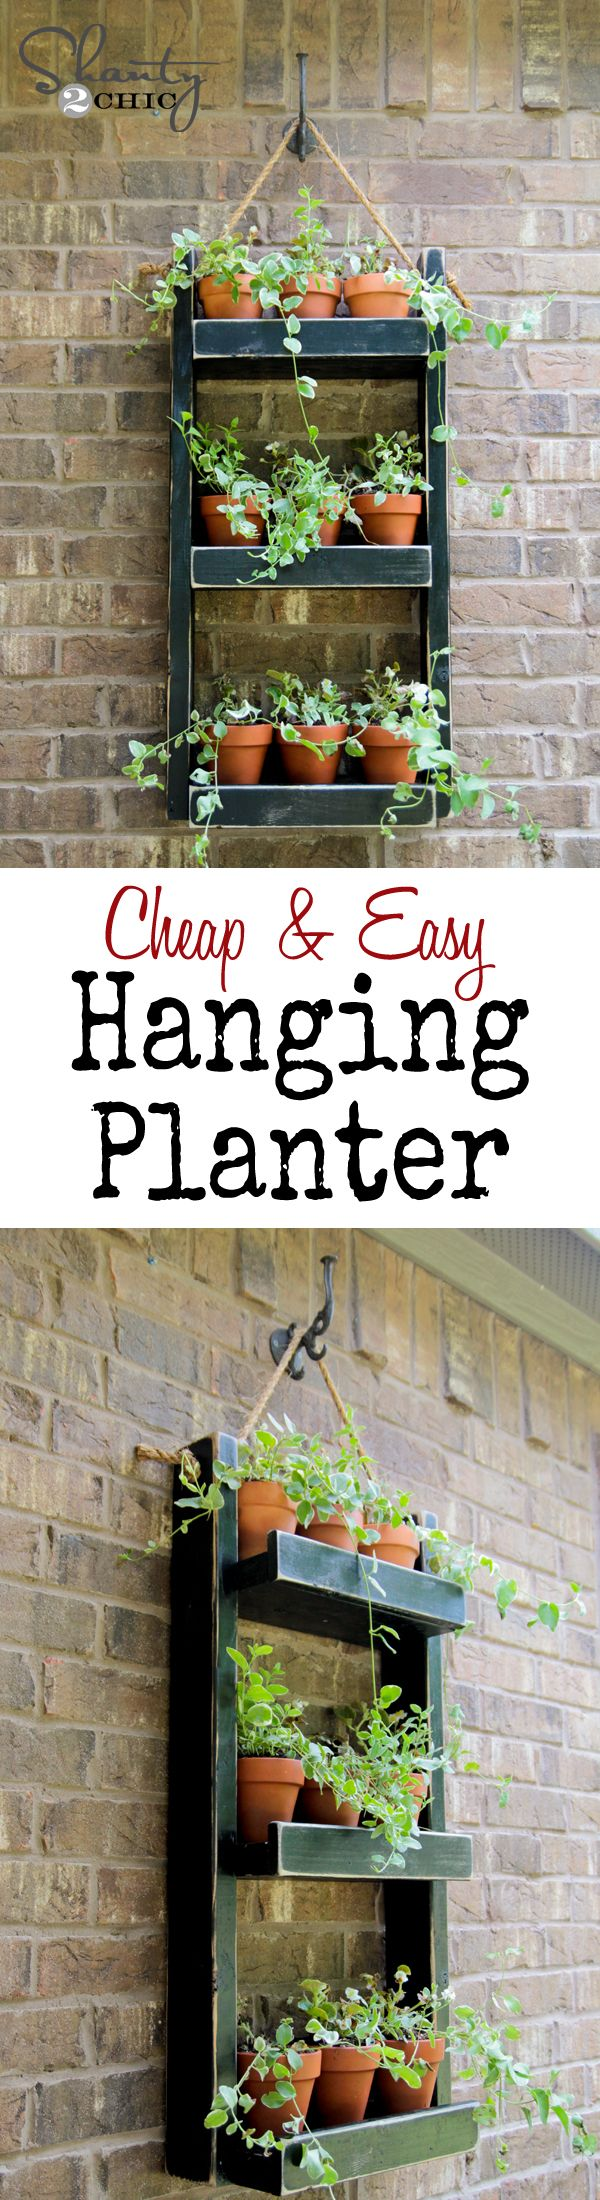 Super cheap and easy hanging planter... LOVE this!, gardening, container gardening, landscaping, DIY